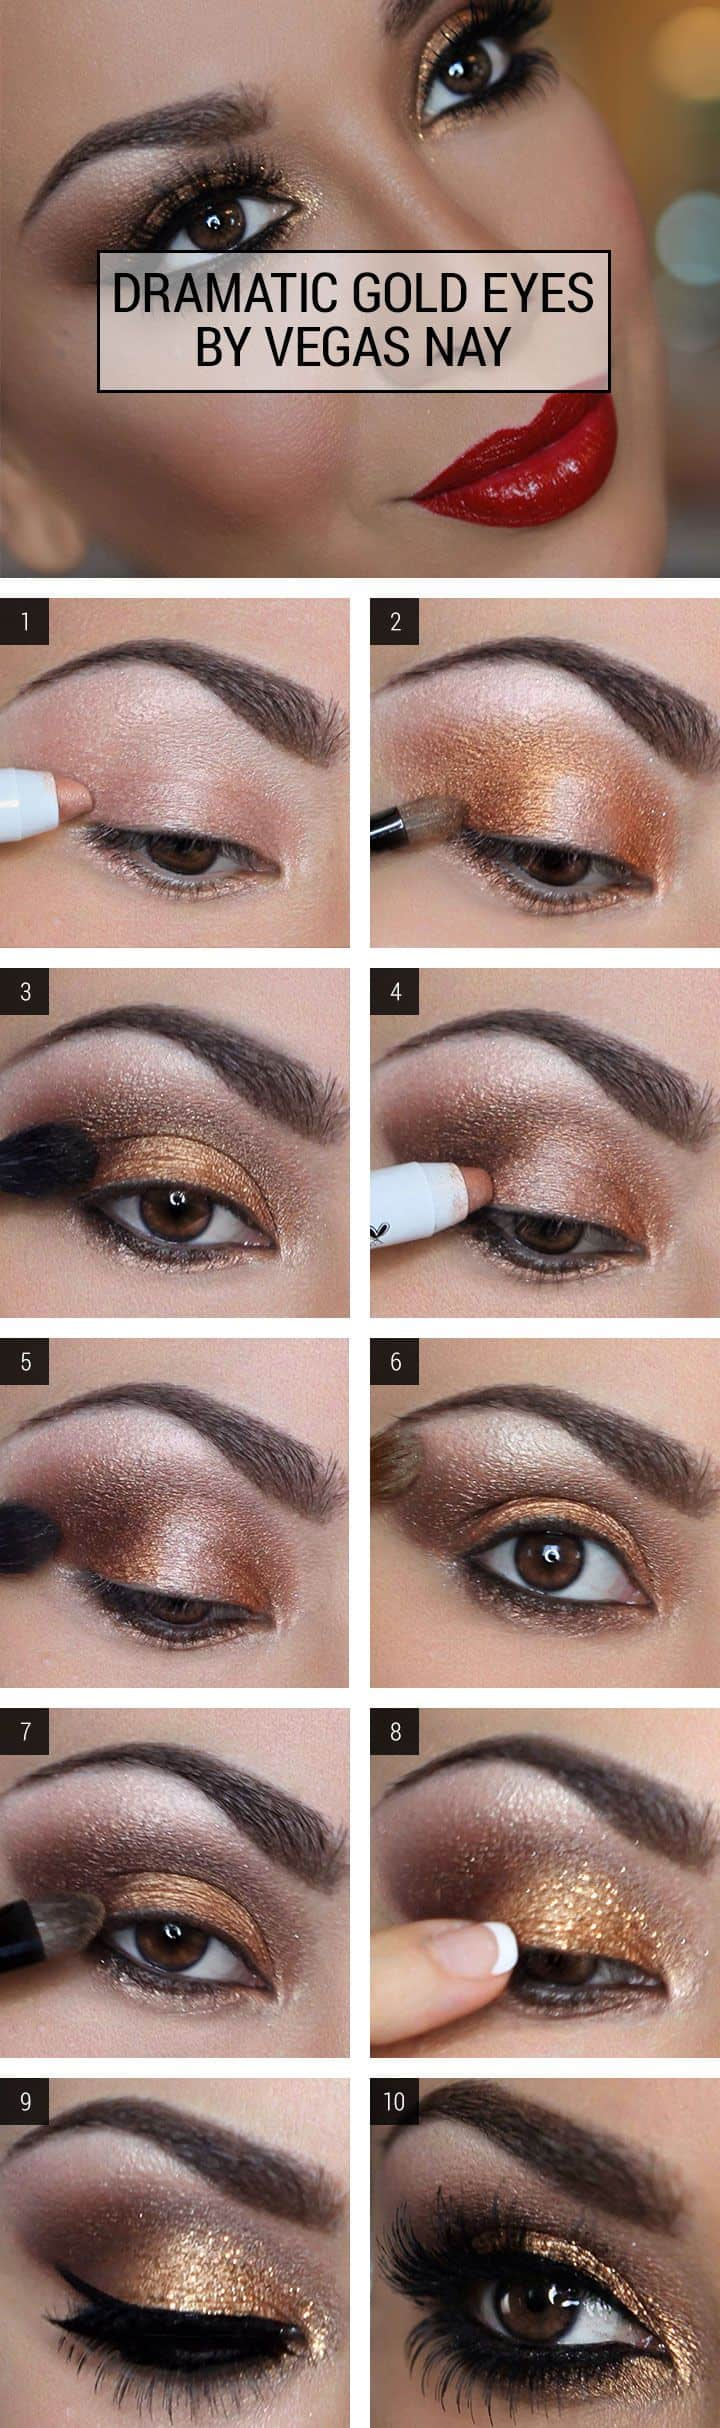 dramatic gold eyes cosmopolitan